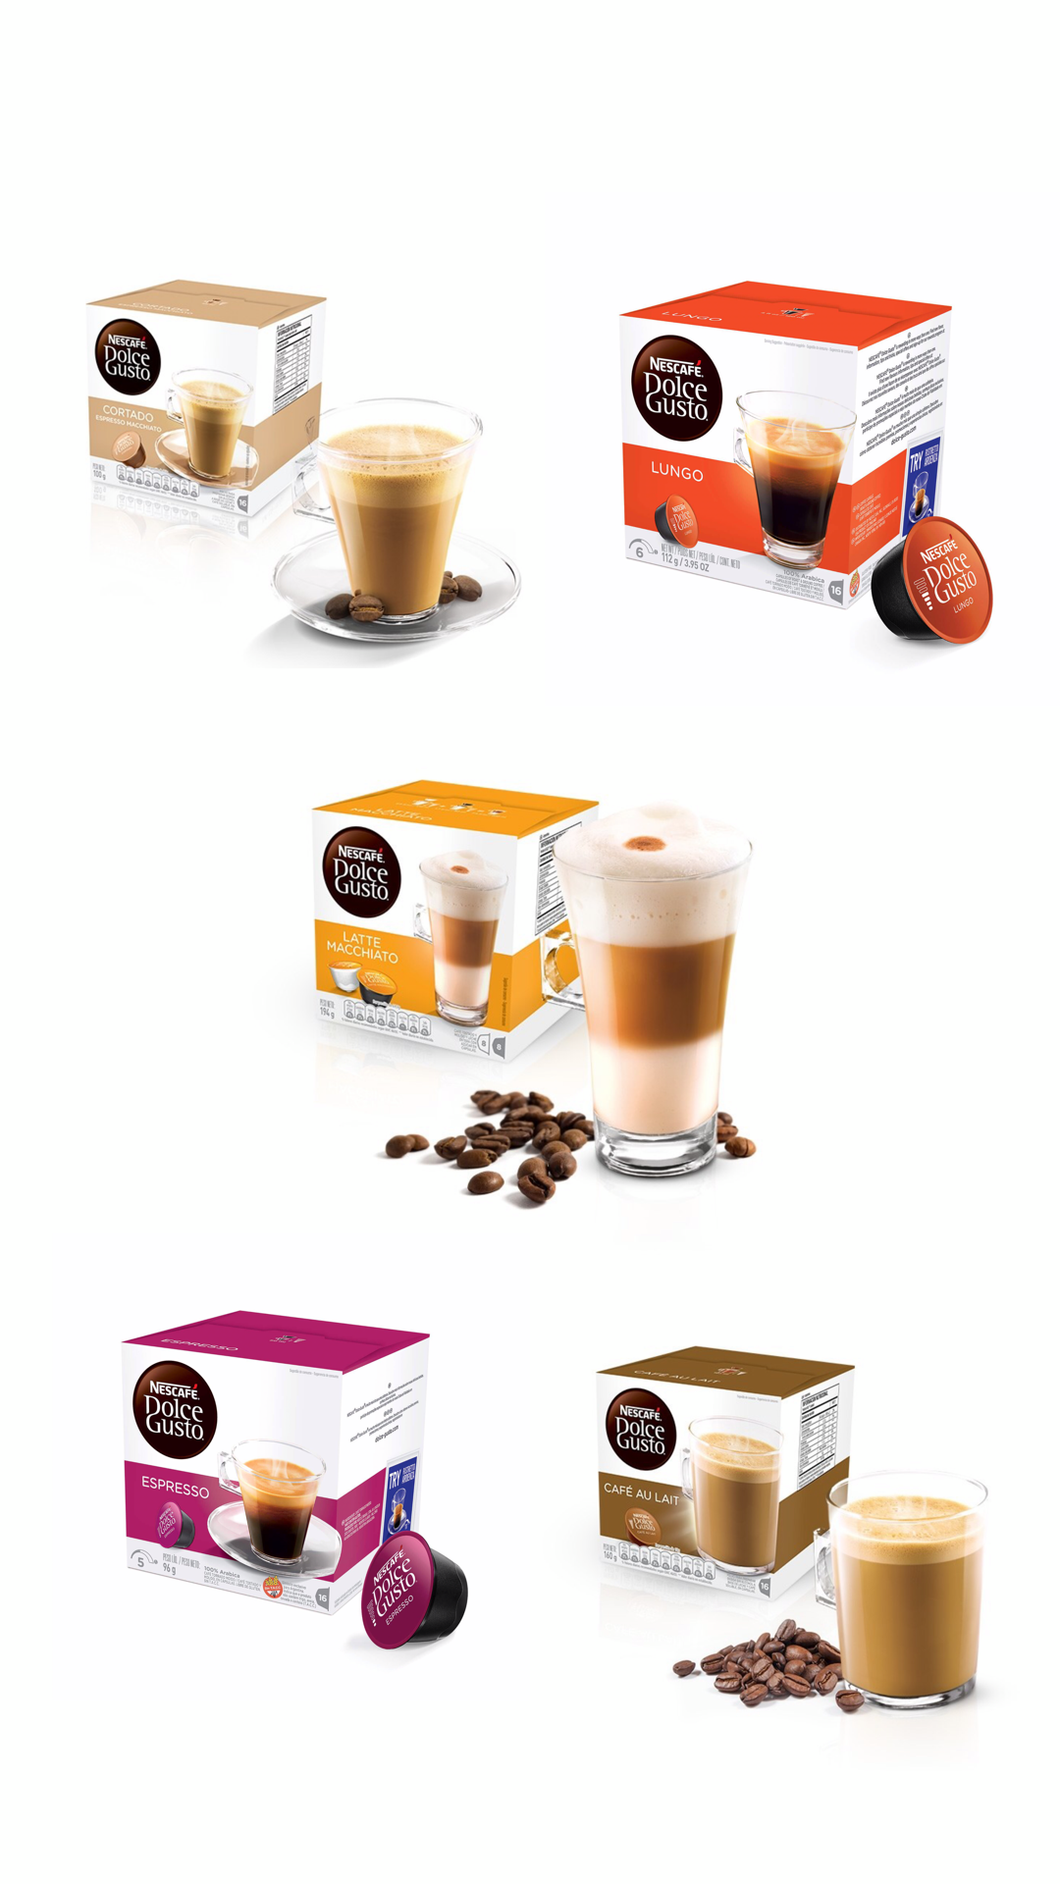 PROMO! Pack clásico - 5 Cajas x16 Capsulas Dolce Gusto